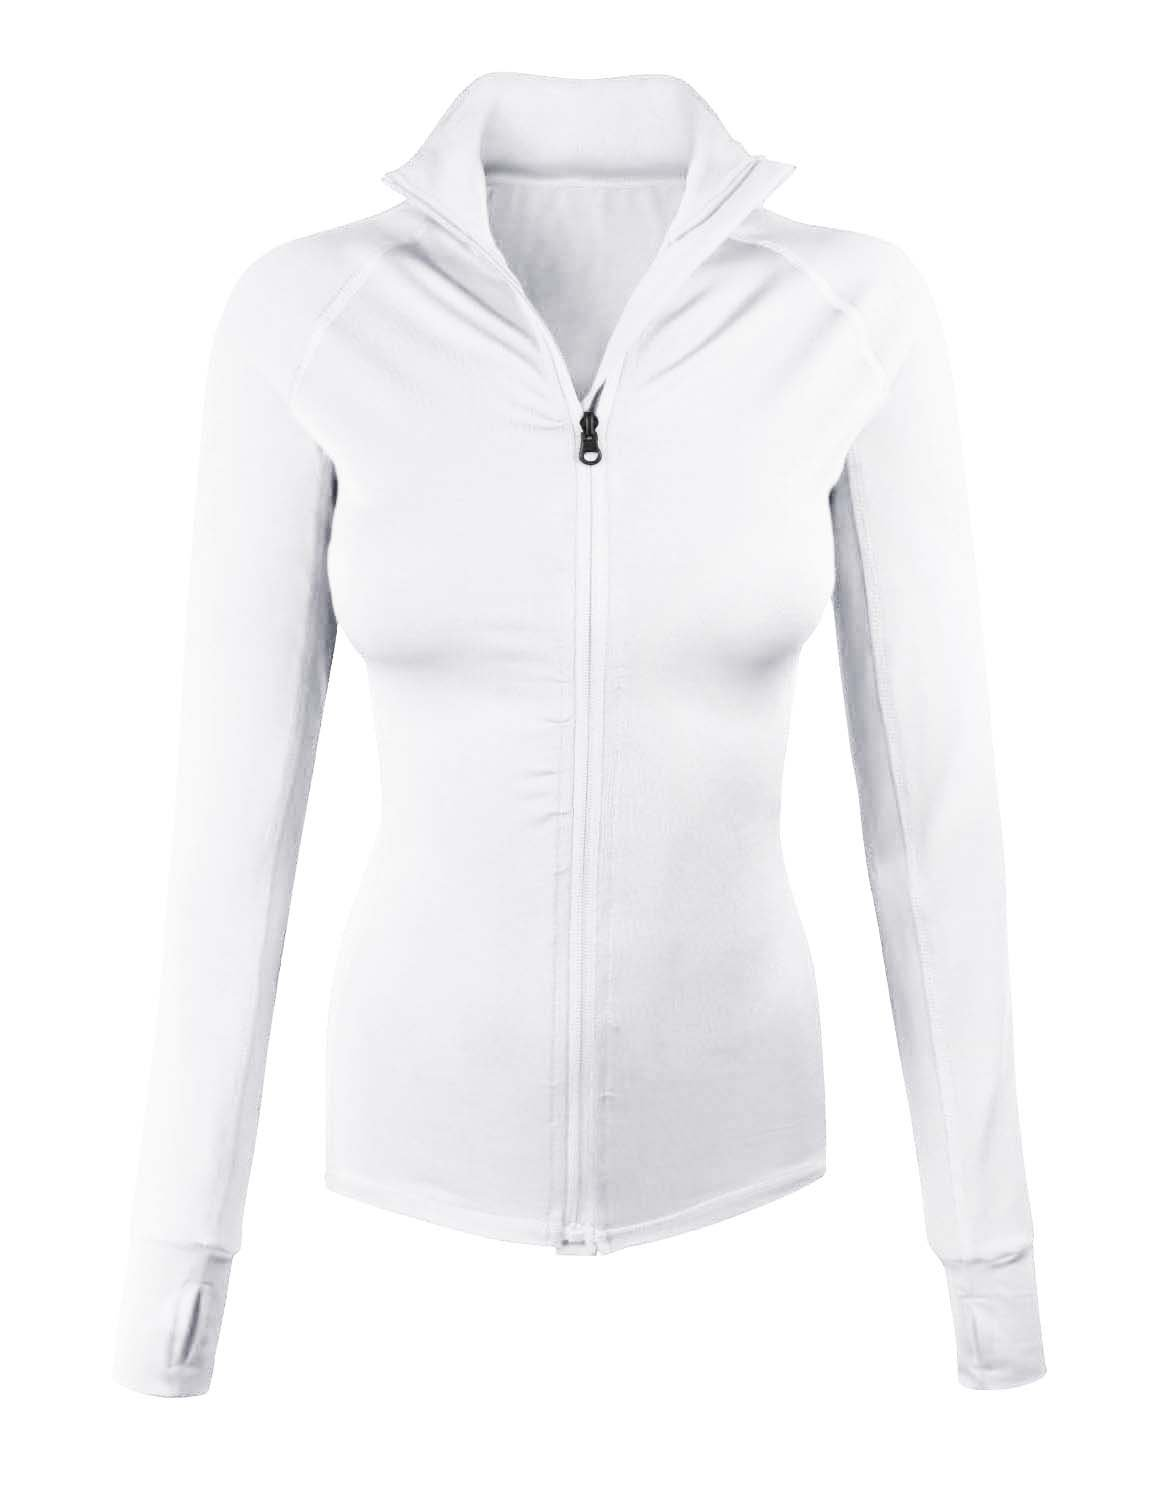 makeitmint Women's Comfy Zip Up Stretchy Work Out Track Jacket w/ Back Pocket SMALL YJZ0002_02WHITE